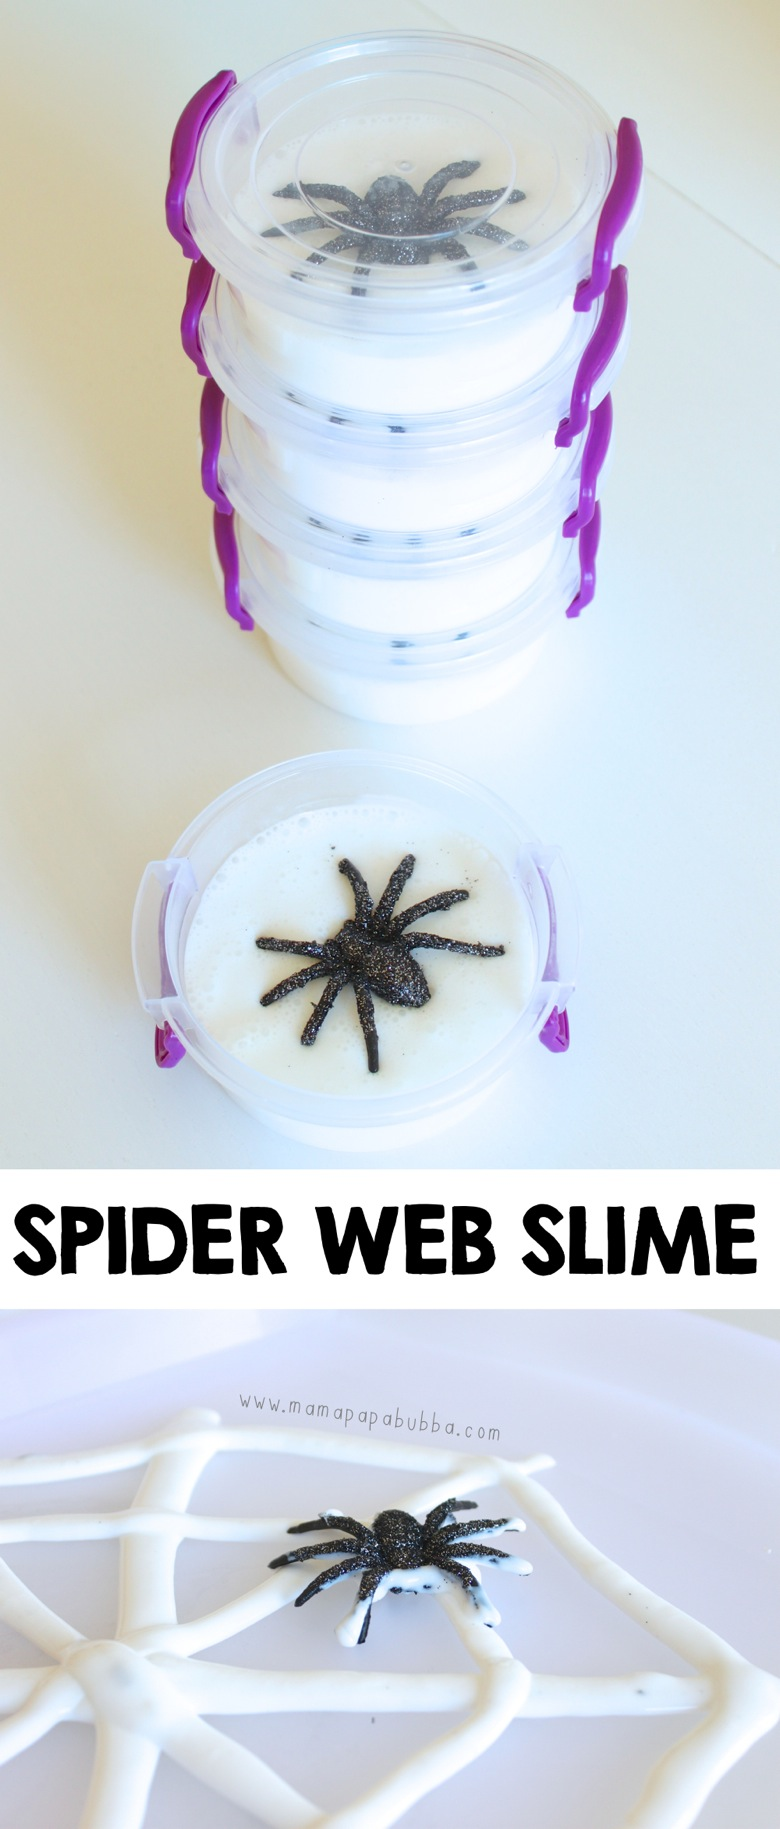 Spider Web Slime Halloween Favours | Mama Papa Bubba